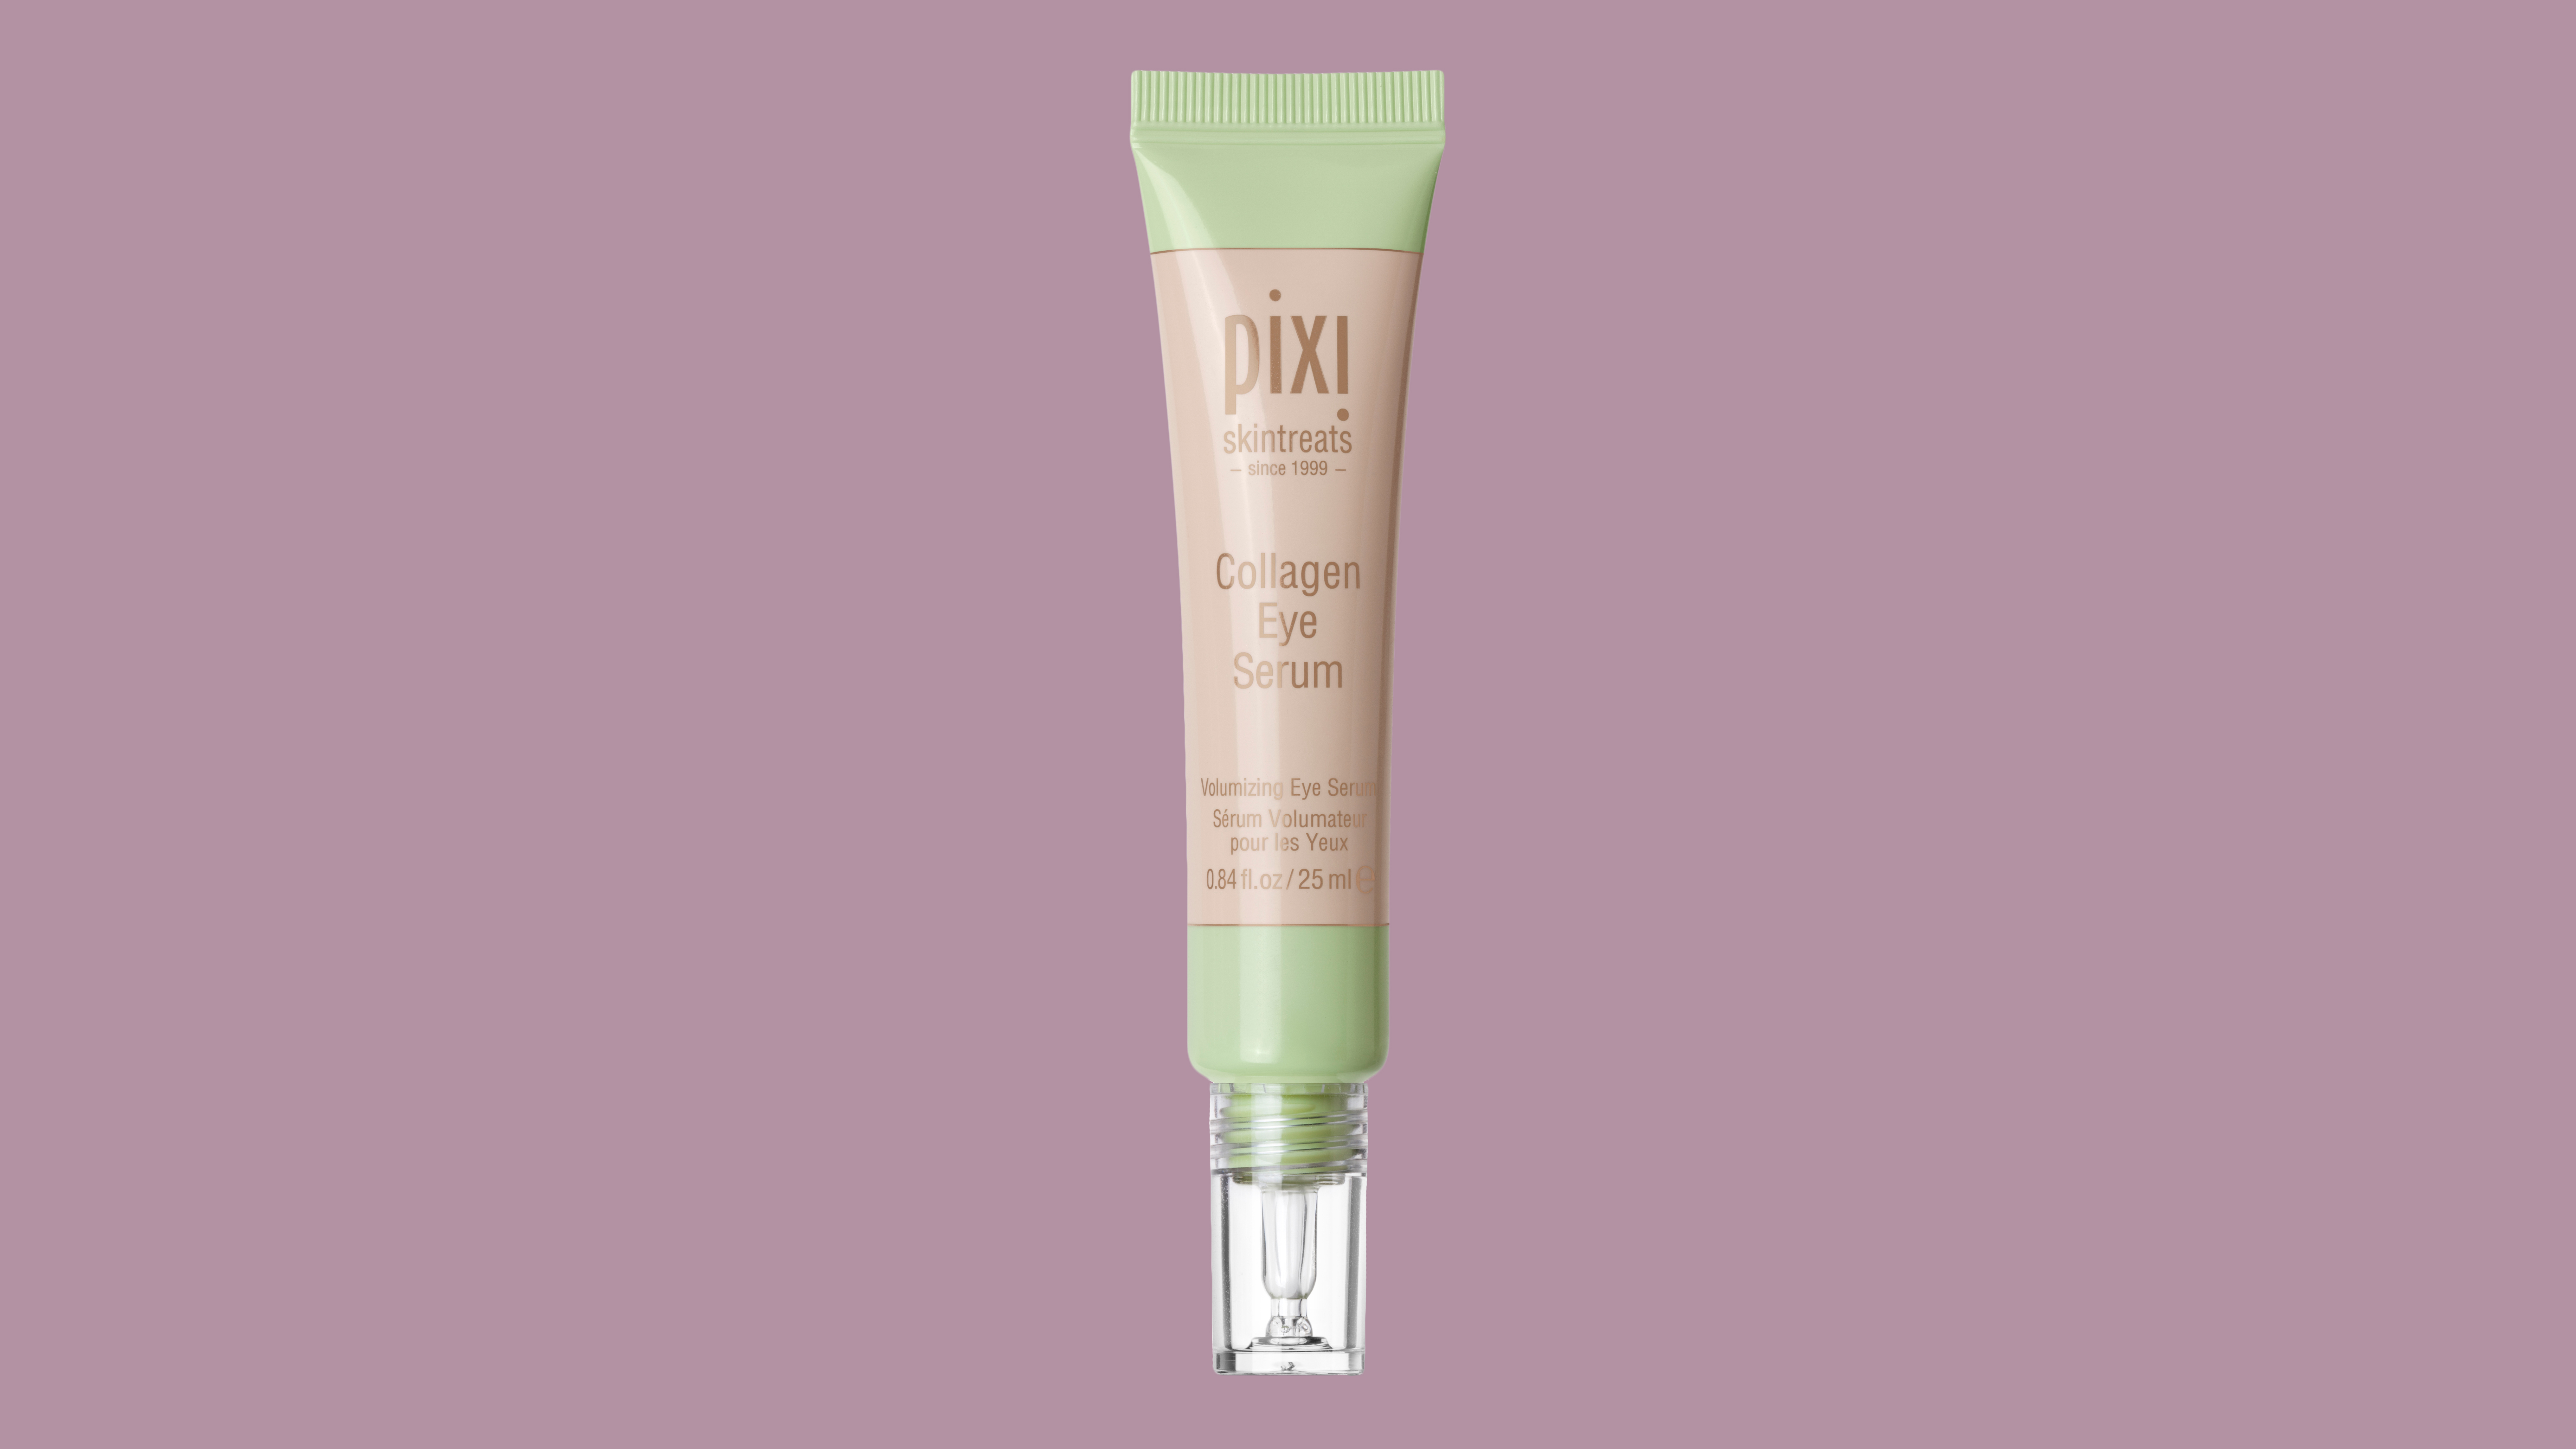 Pixi Beauty Collagen Eye Serum